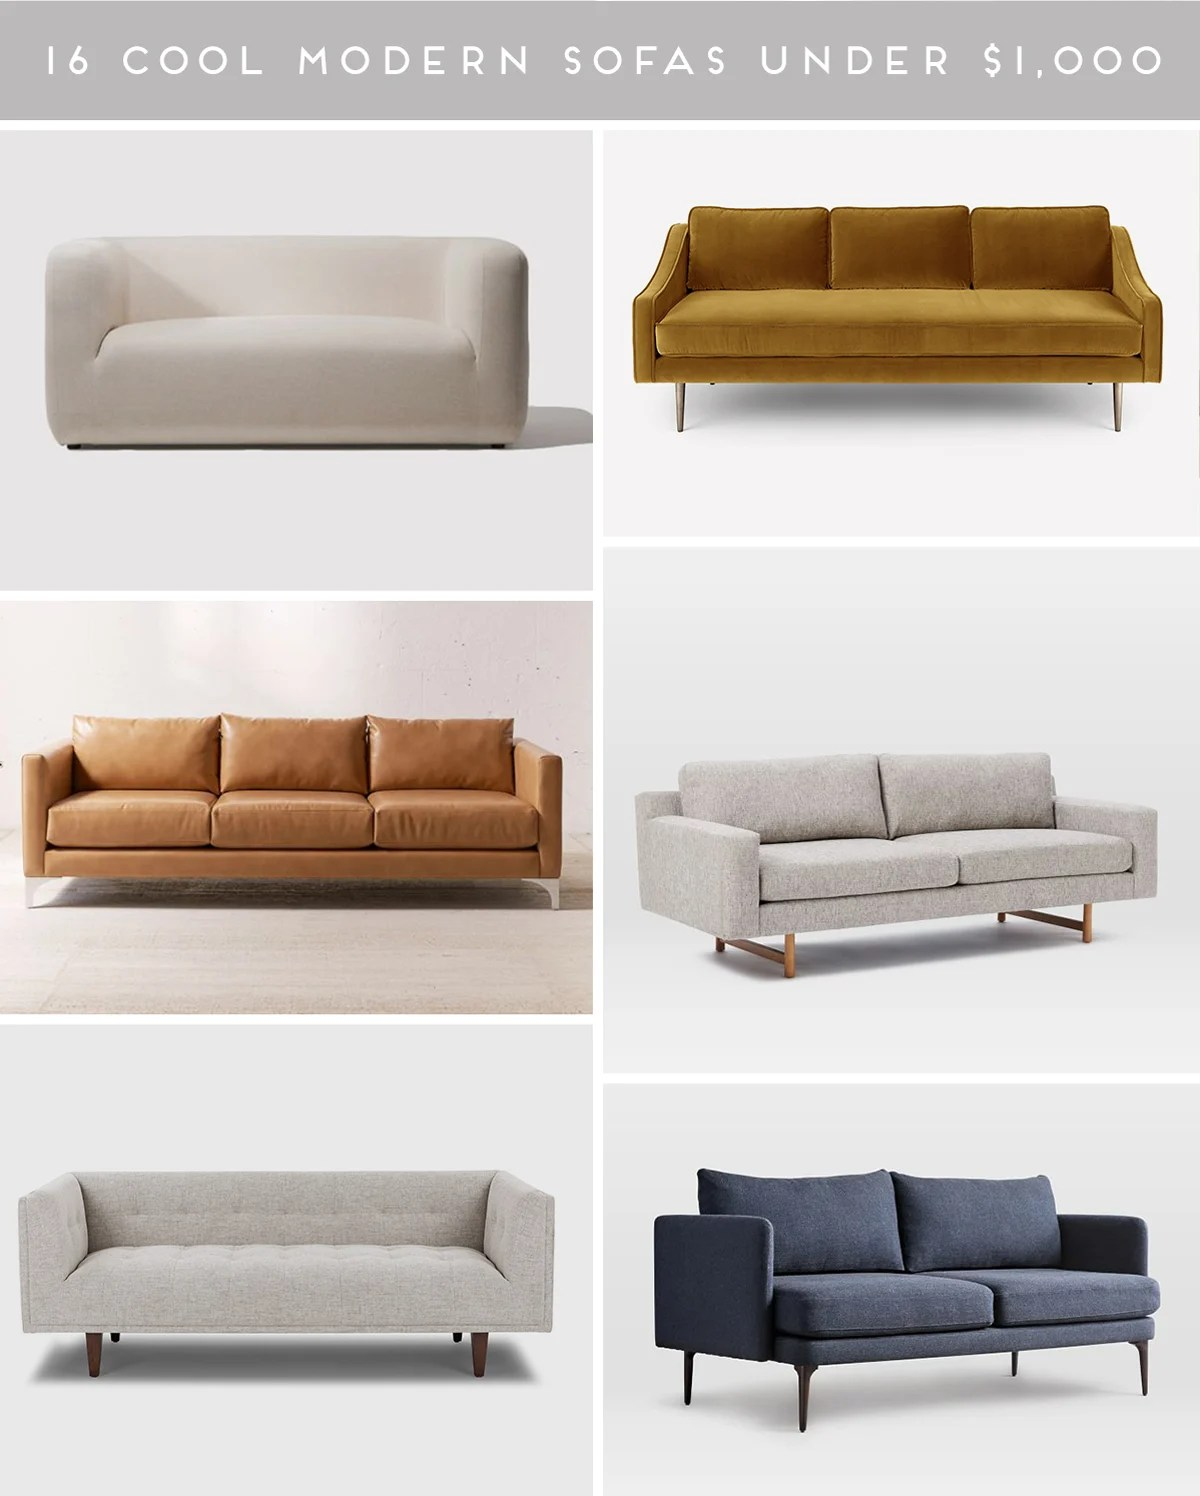 couch potato 16 stylish modern sofas